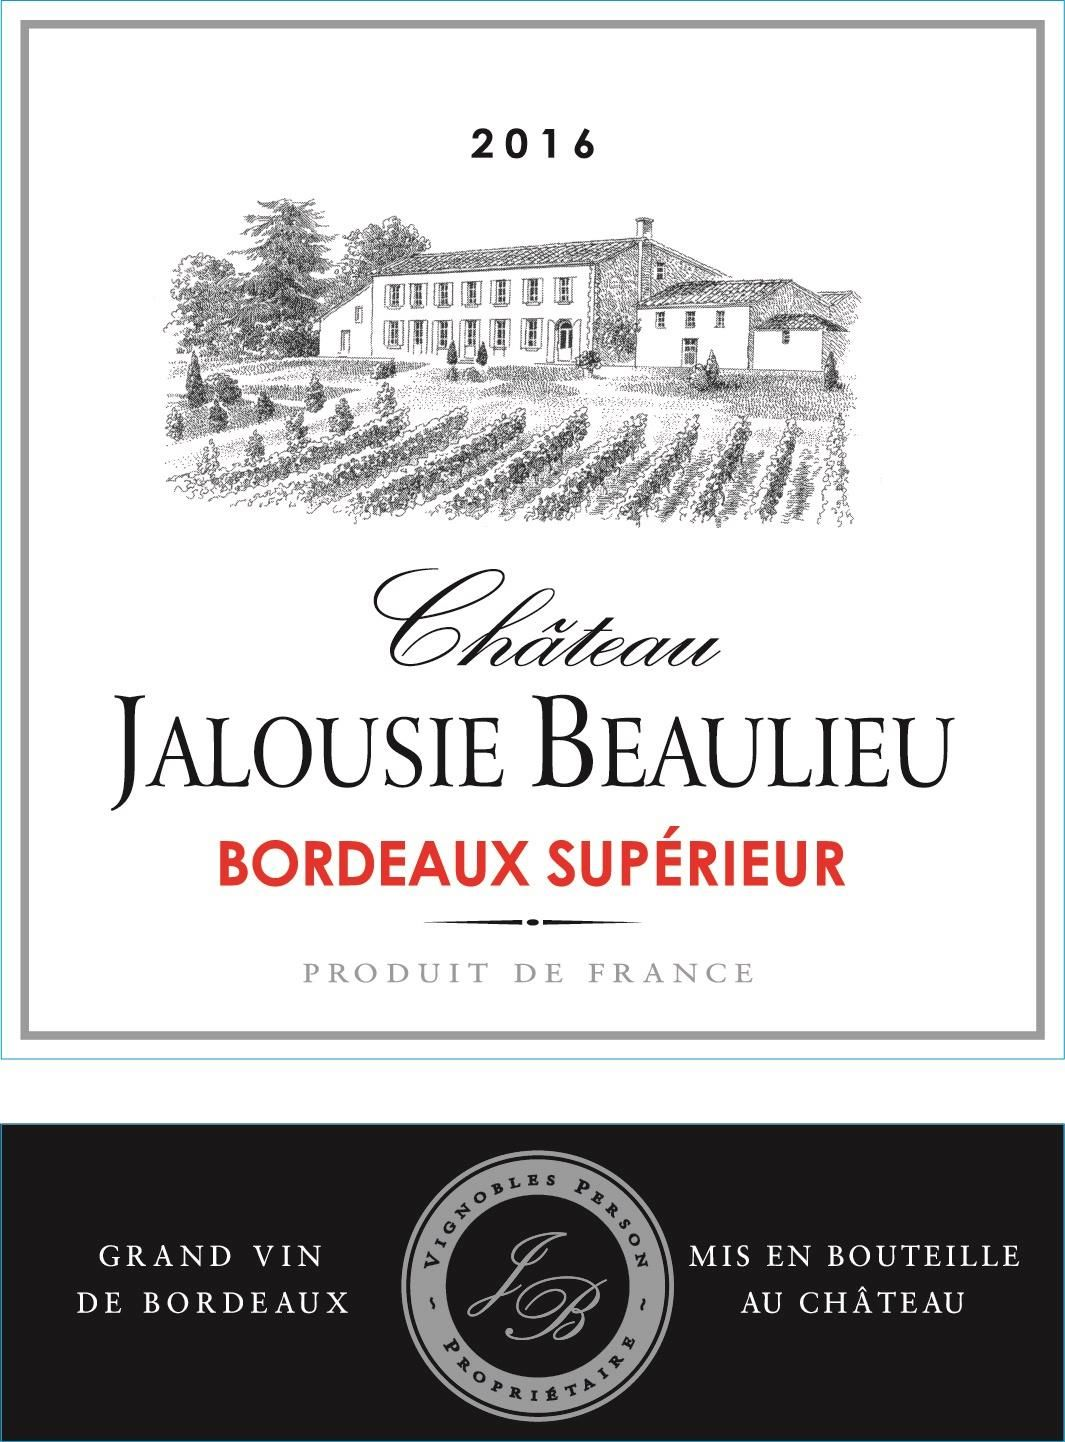 Chateau Jalousie Beaulieu Bordeaux Superieur 2016  Front Label